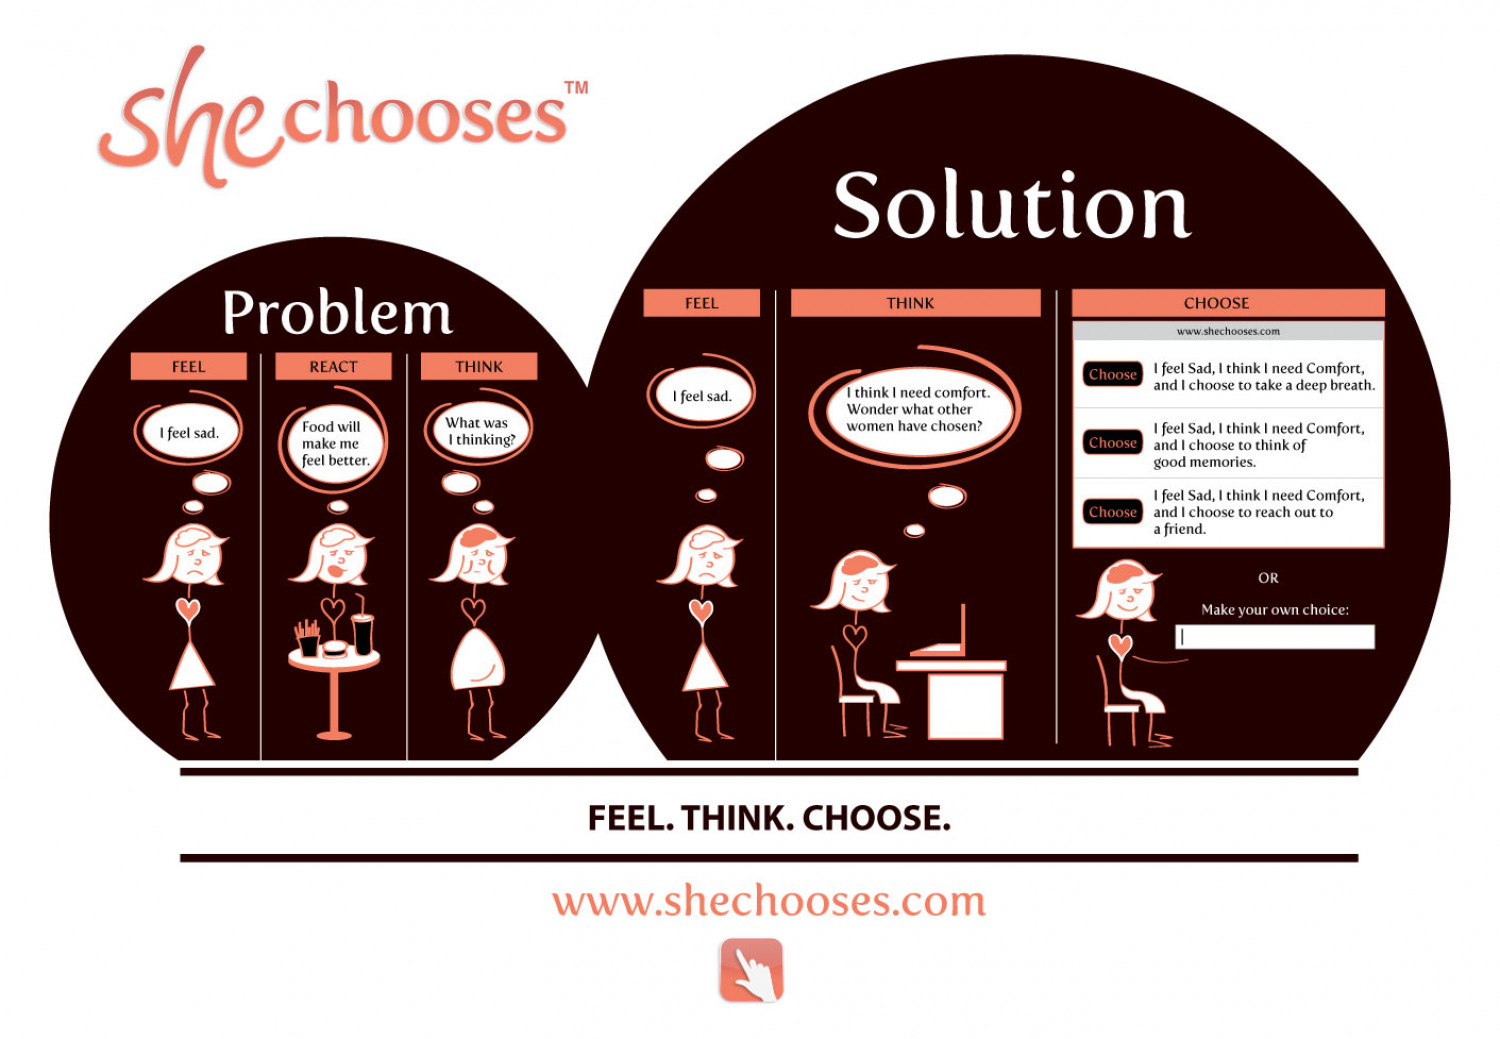 SheChooses: Feel. Think. Choose. Infographic Infographic